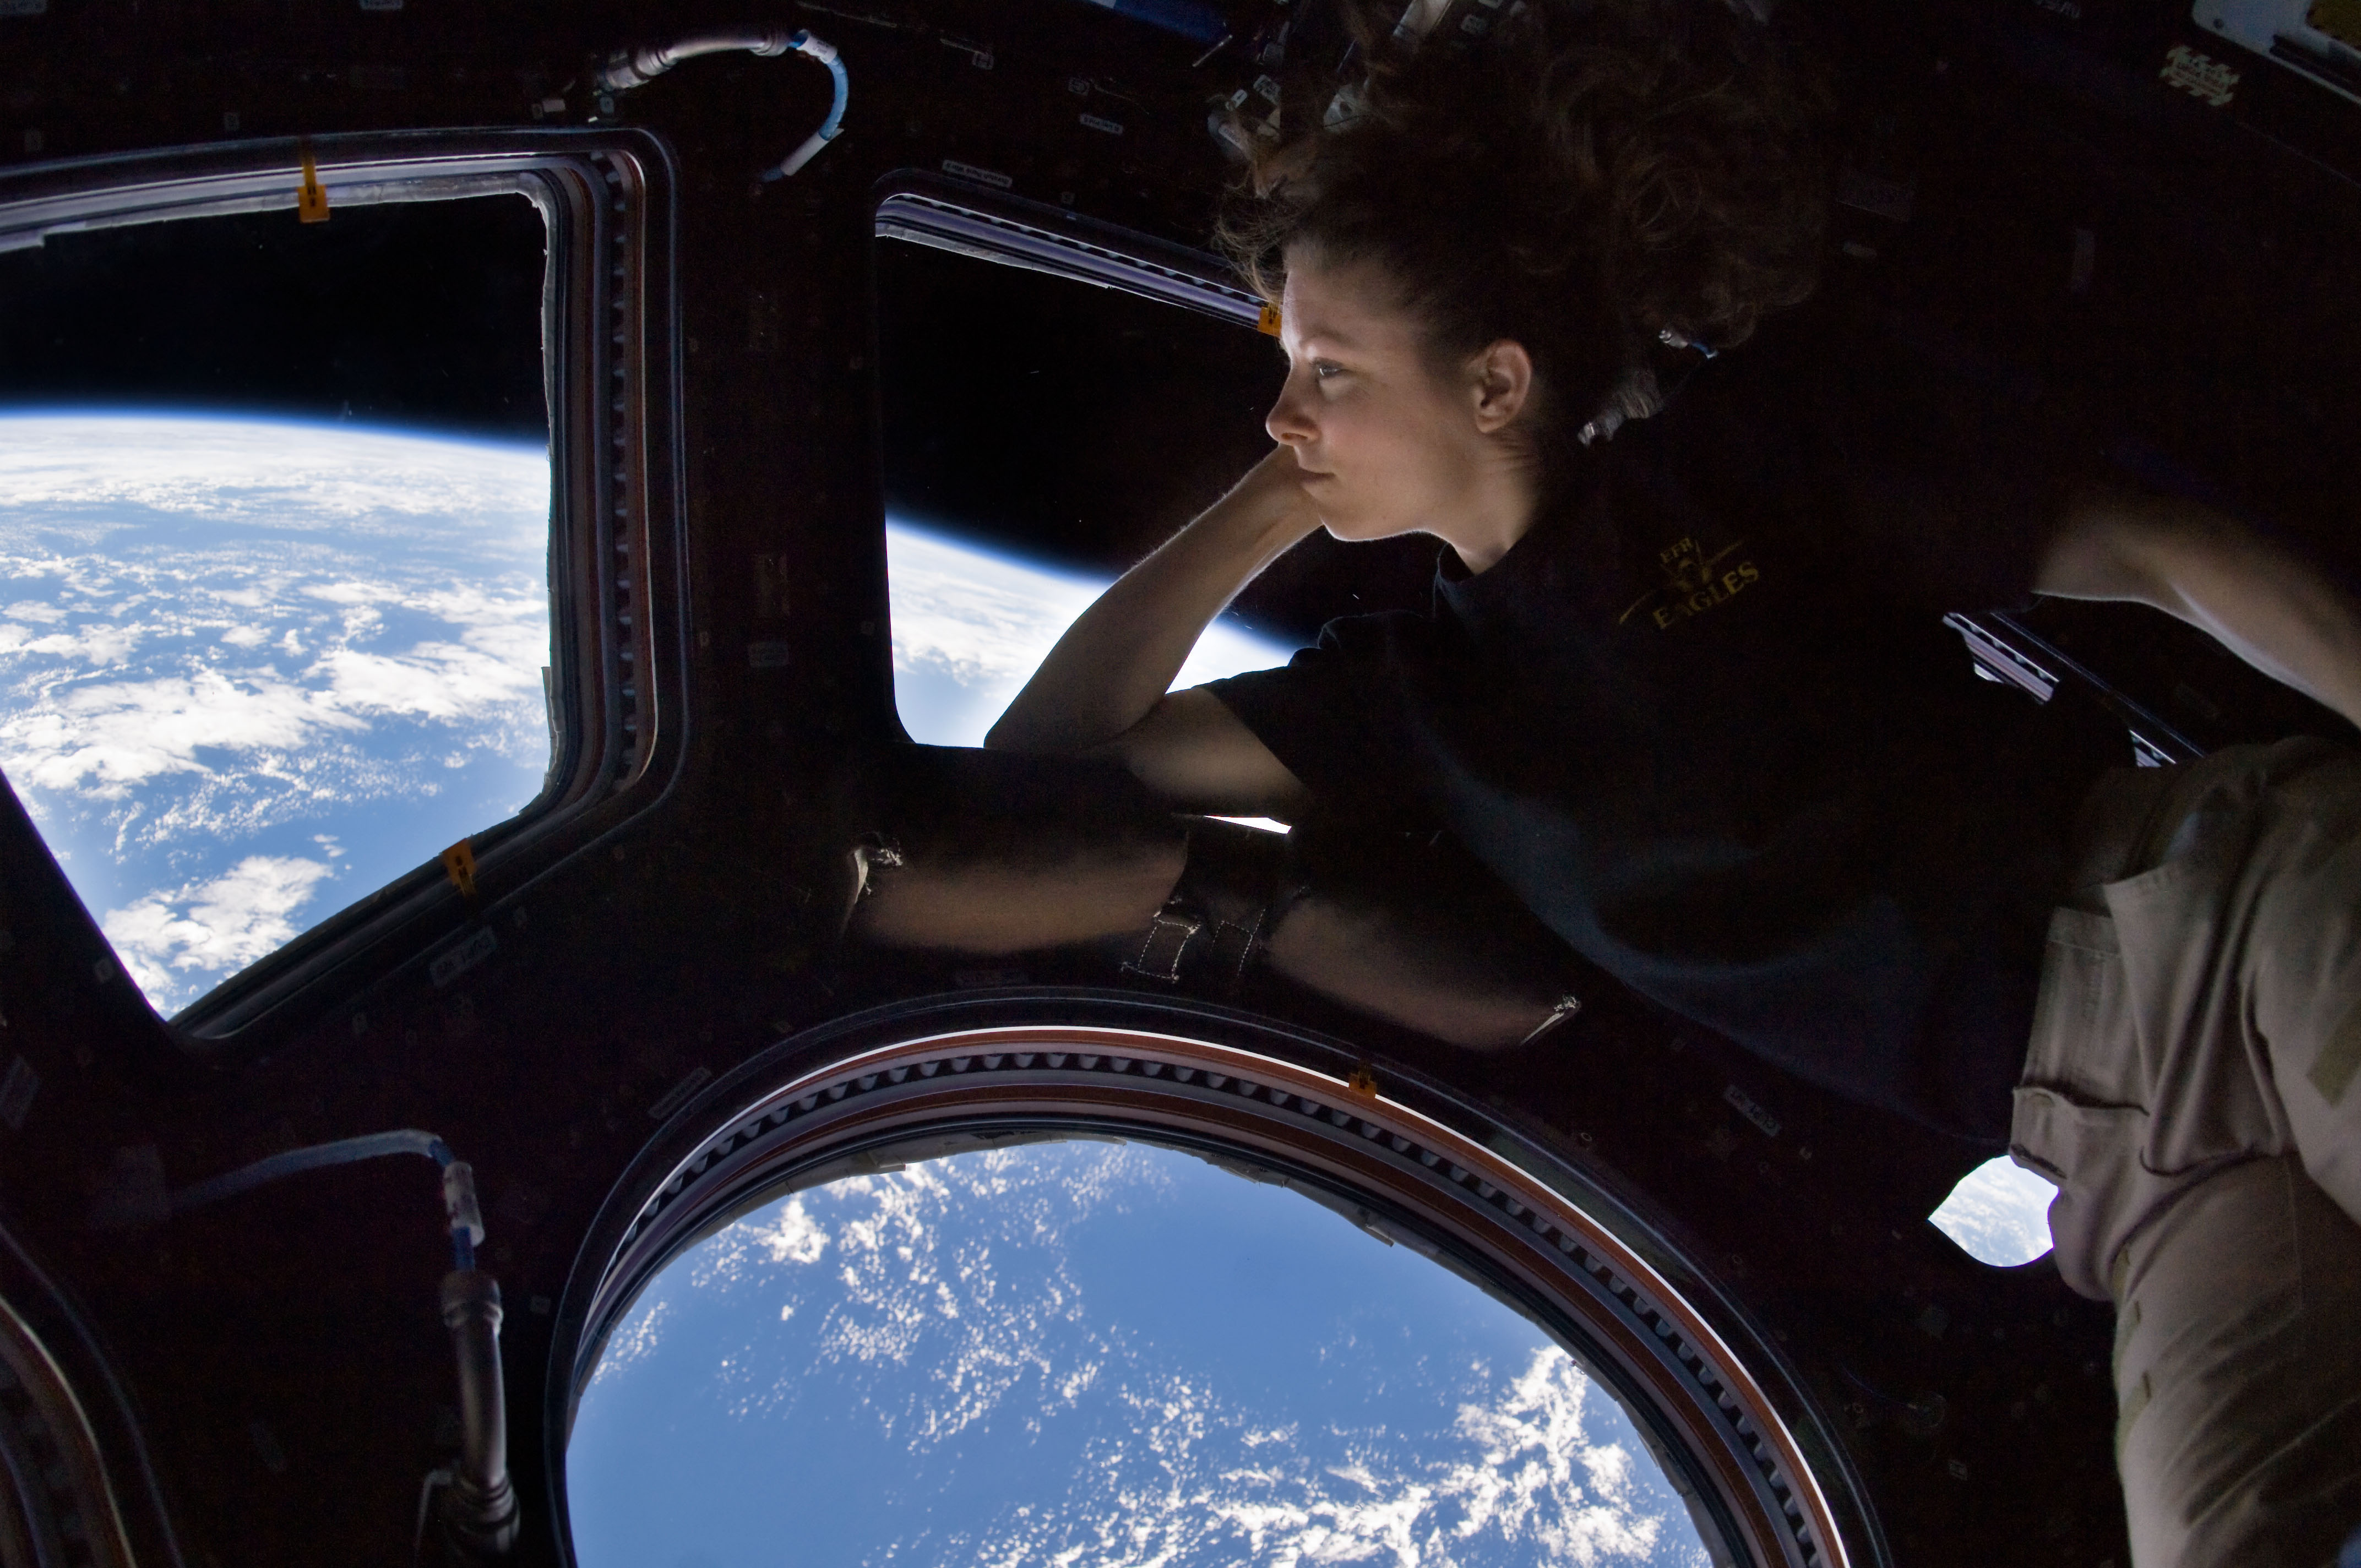 Tracy Caldwell Dyson in the Cupola module of the International Space Station, observing the Earth below during Expedition 24. Caldwell Dyson is an American chemist and astronaut. She was selected by NASA in 1998 and made her first spaceflight in August 2007 on the STS-118 mission aboard Space Shuttle Endeavour.